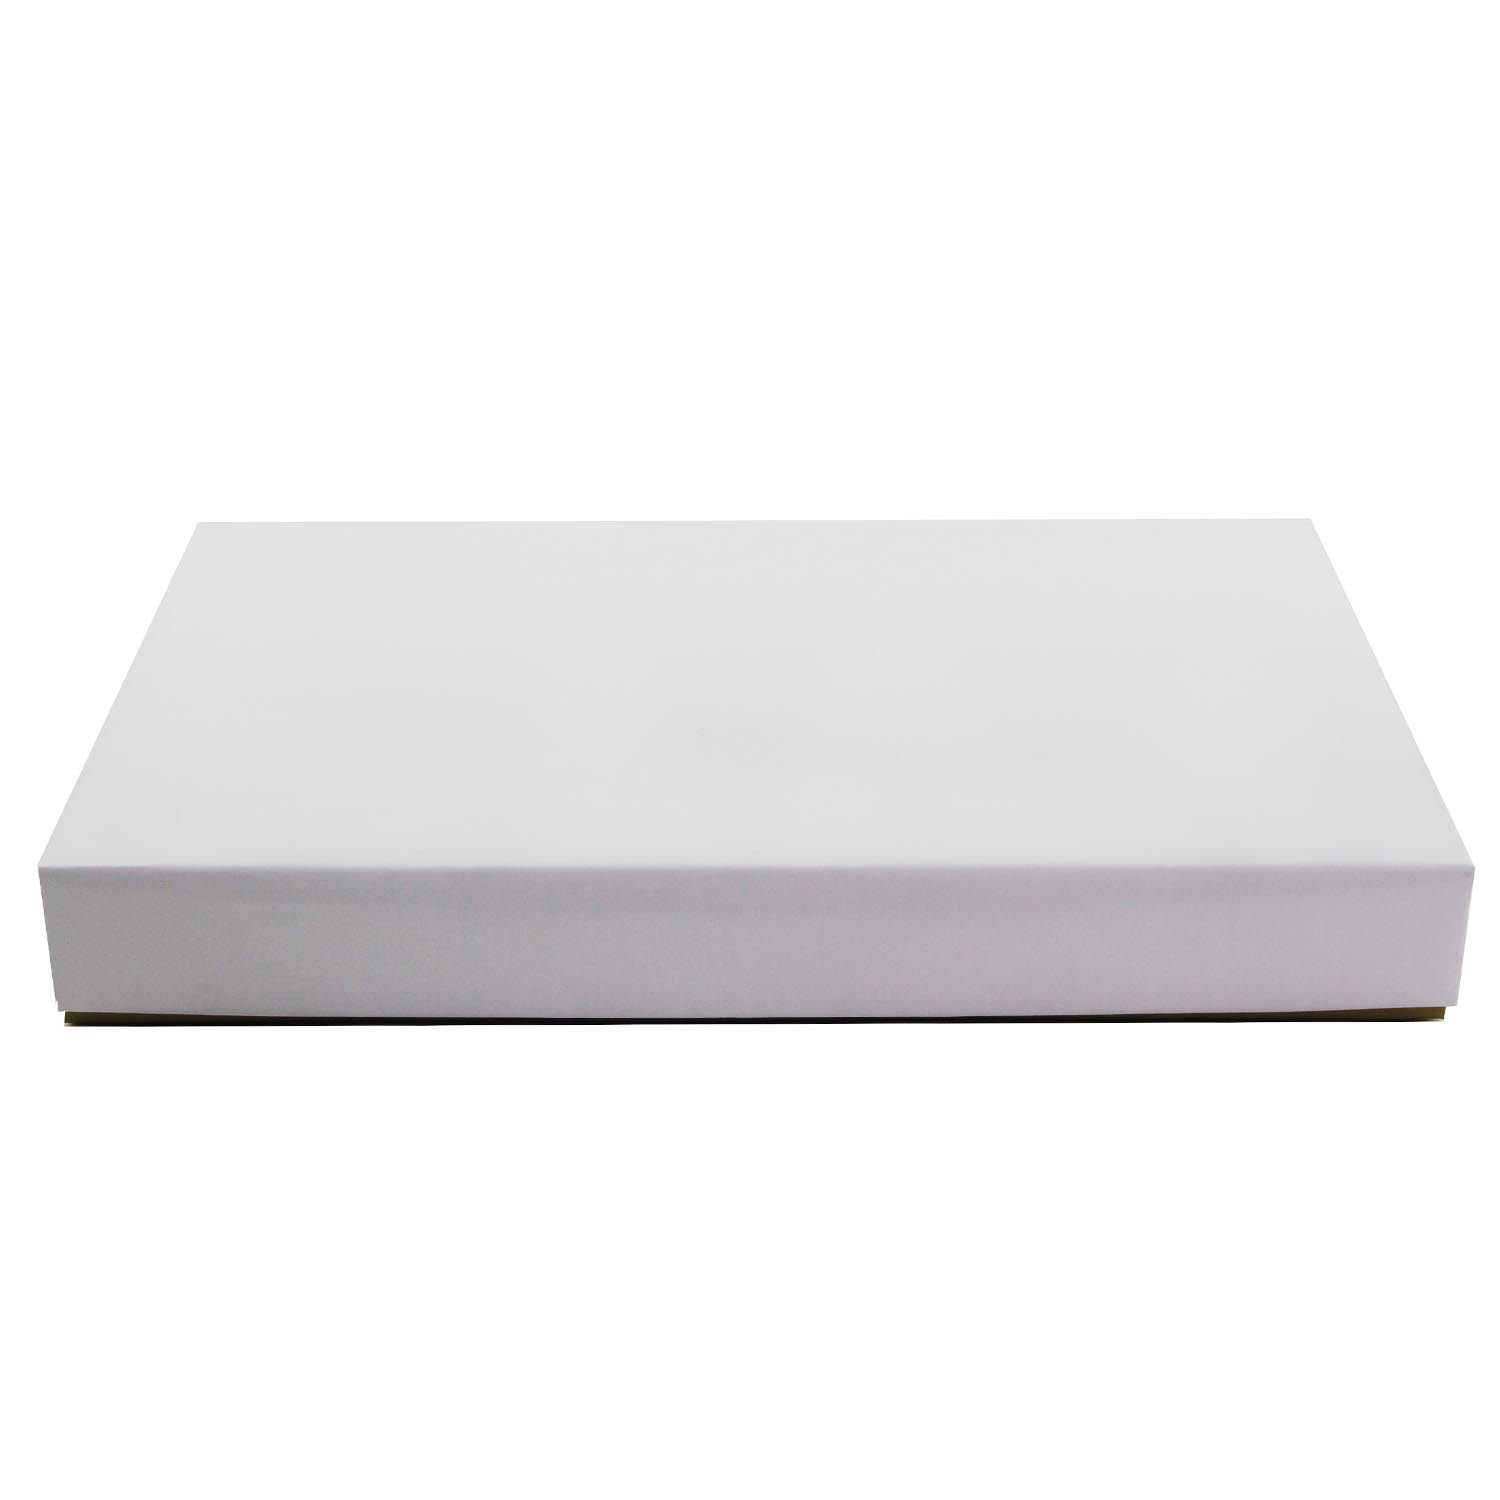 1 lb. White Candy Box with Gold Base